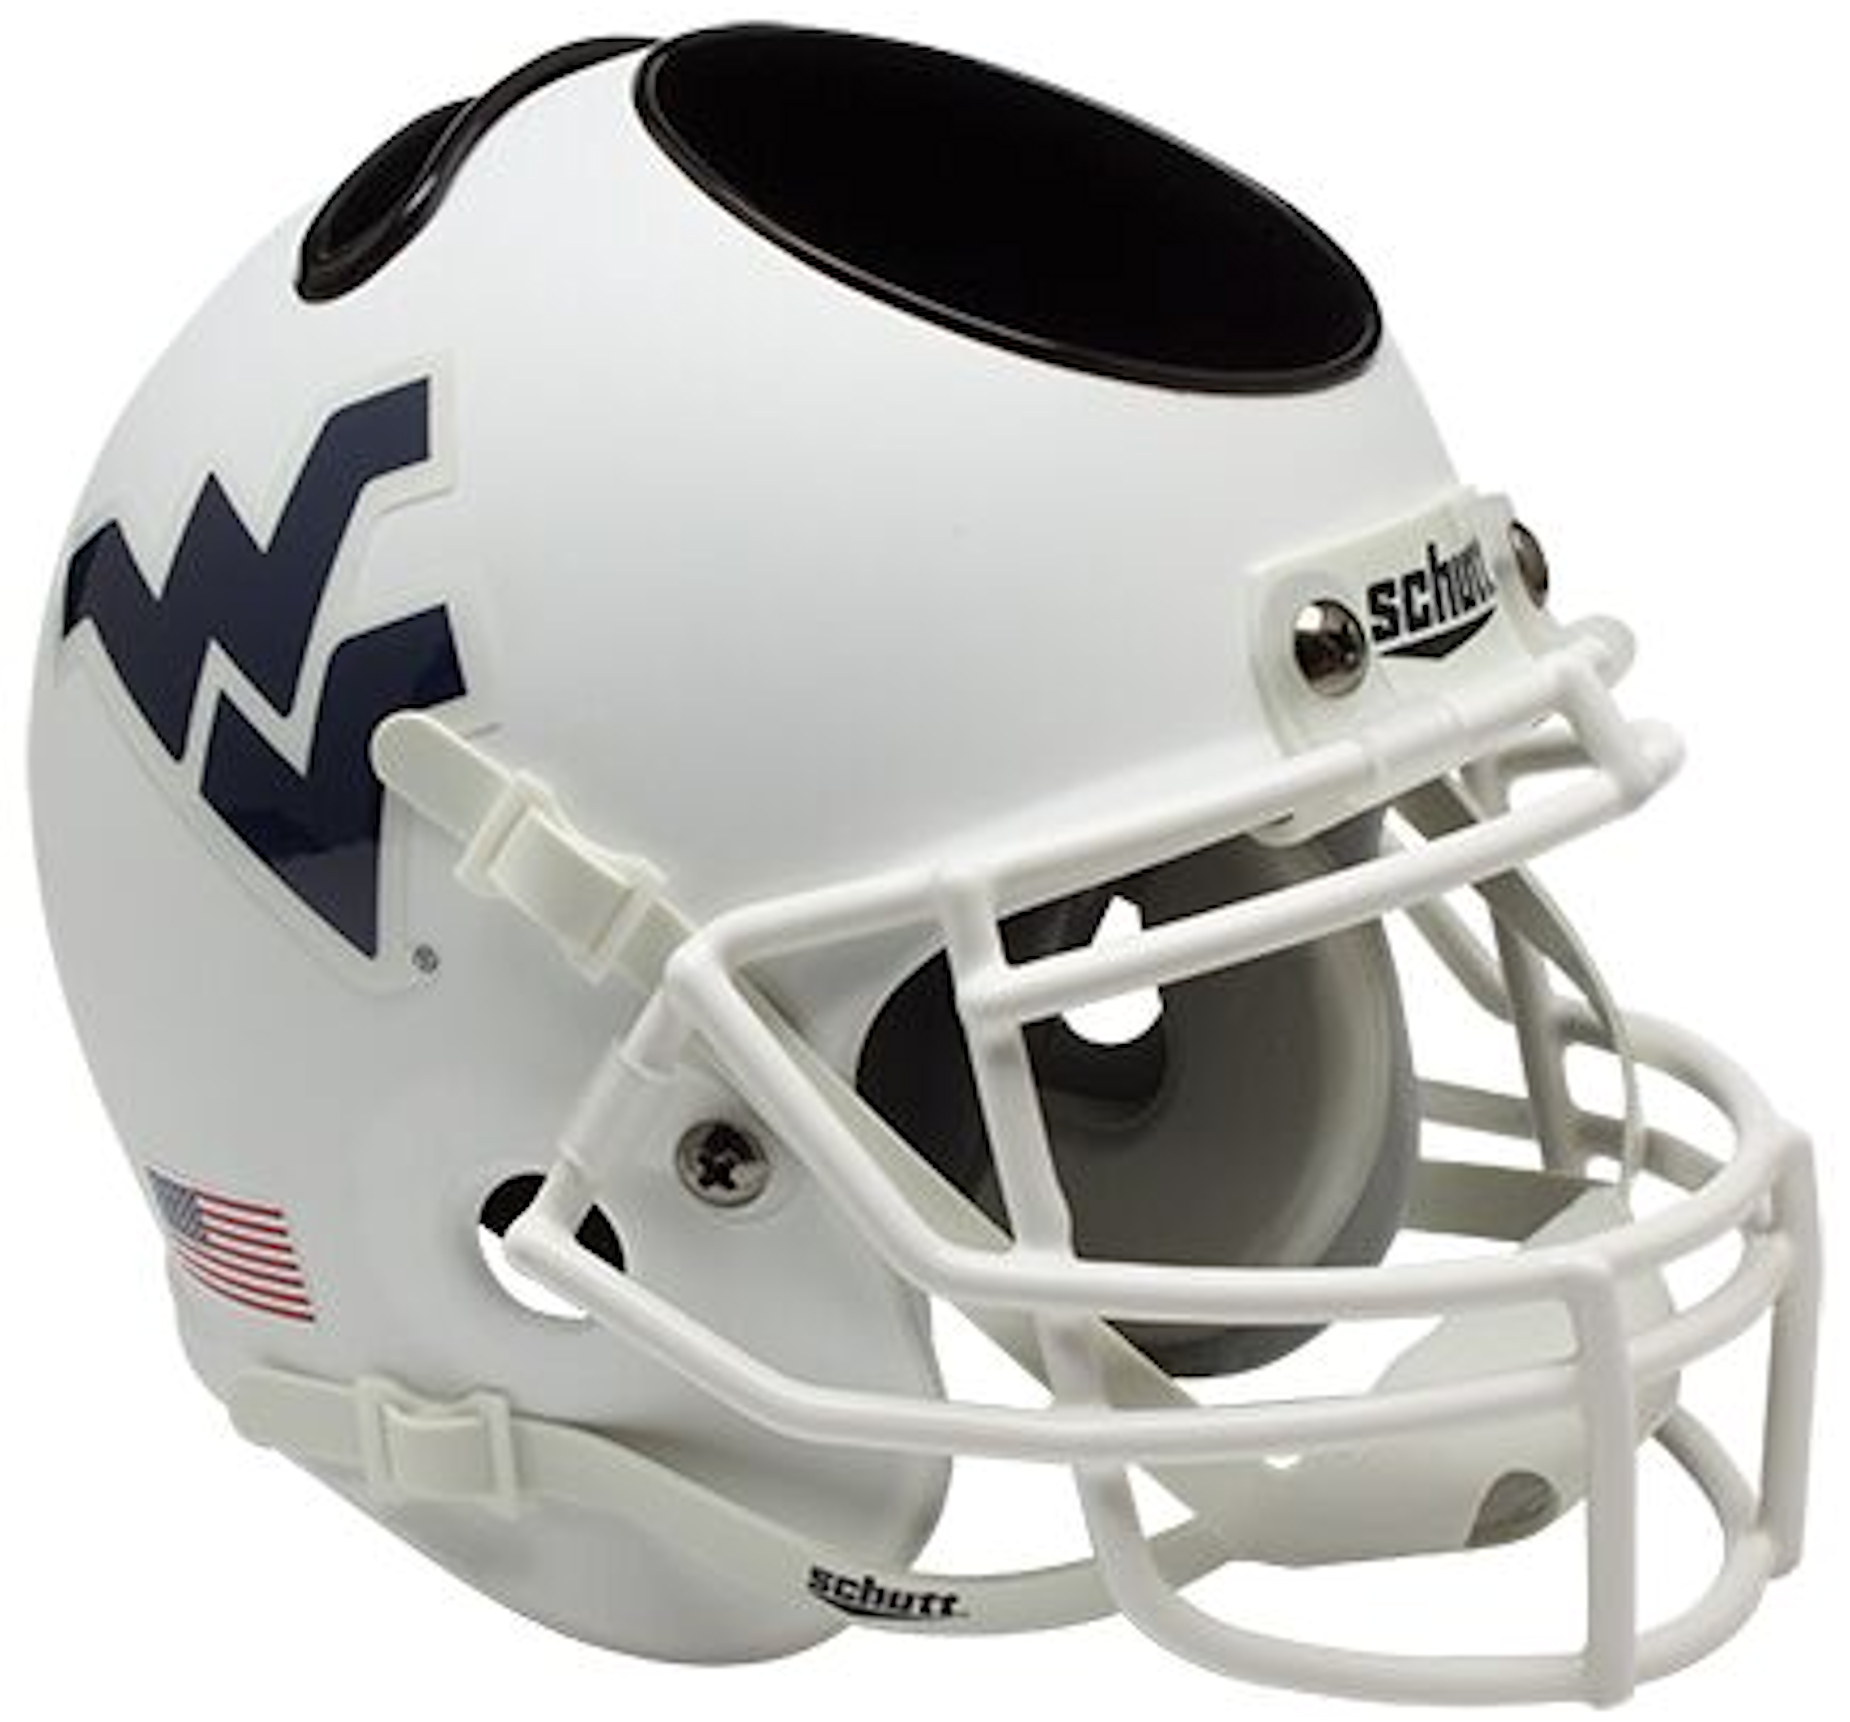 West Virginia Mountaineers Miniature Football Helmet Desk Caddy <B>Matte White</B>